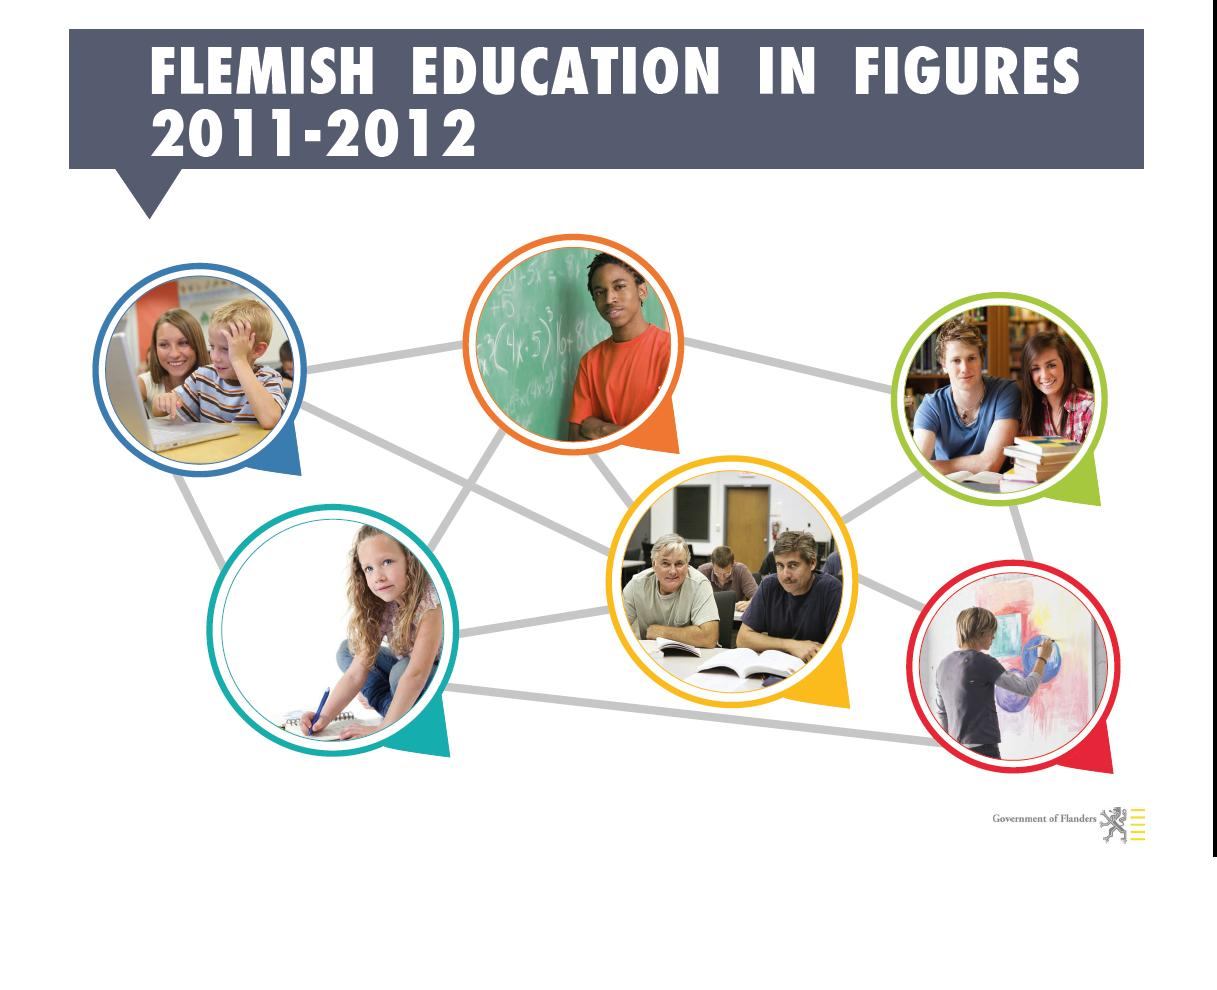 Flemish education in figures 2011-2012